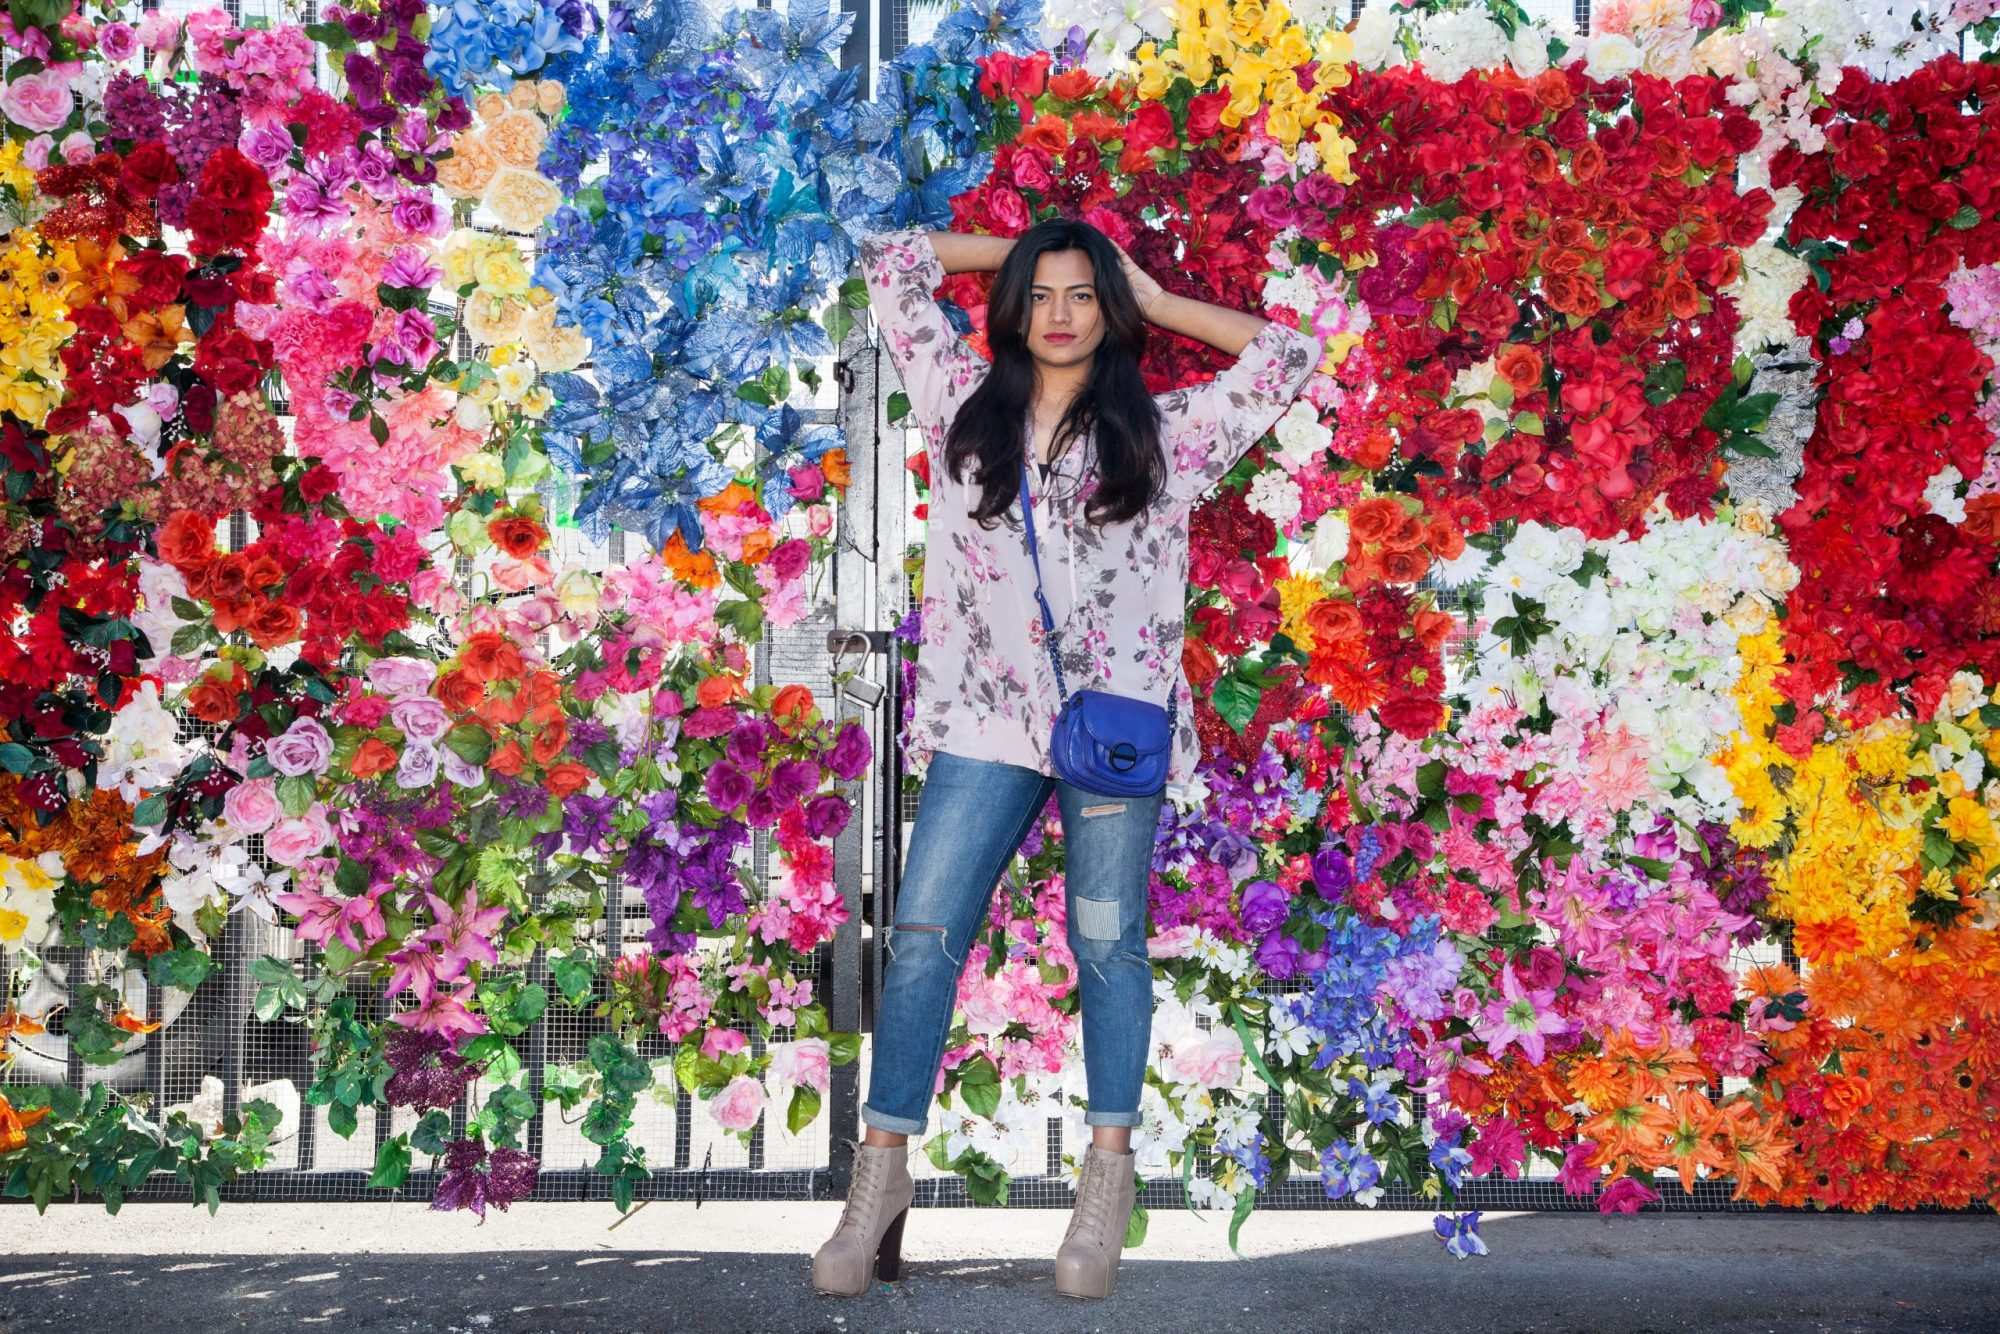 Miami Fashion Blogger Wall Of Flowers Afroza Khan